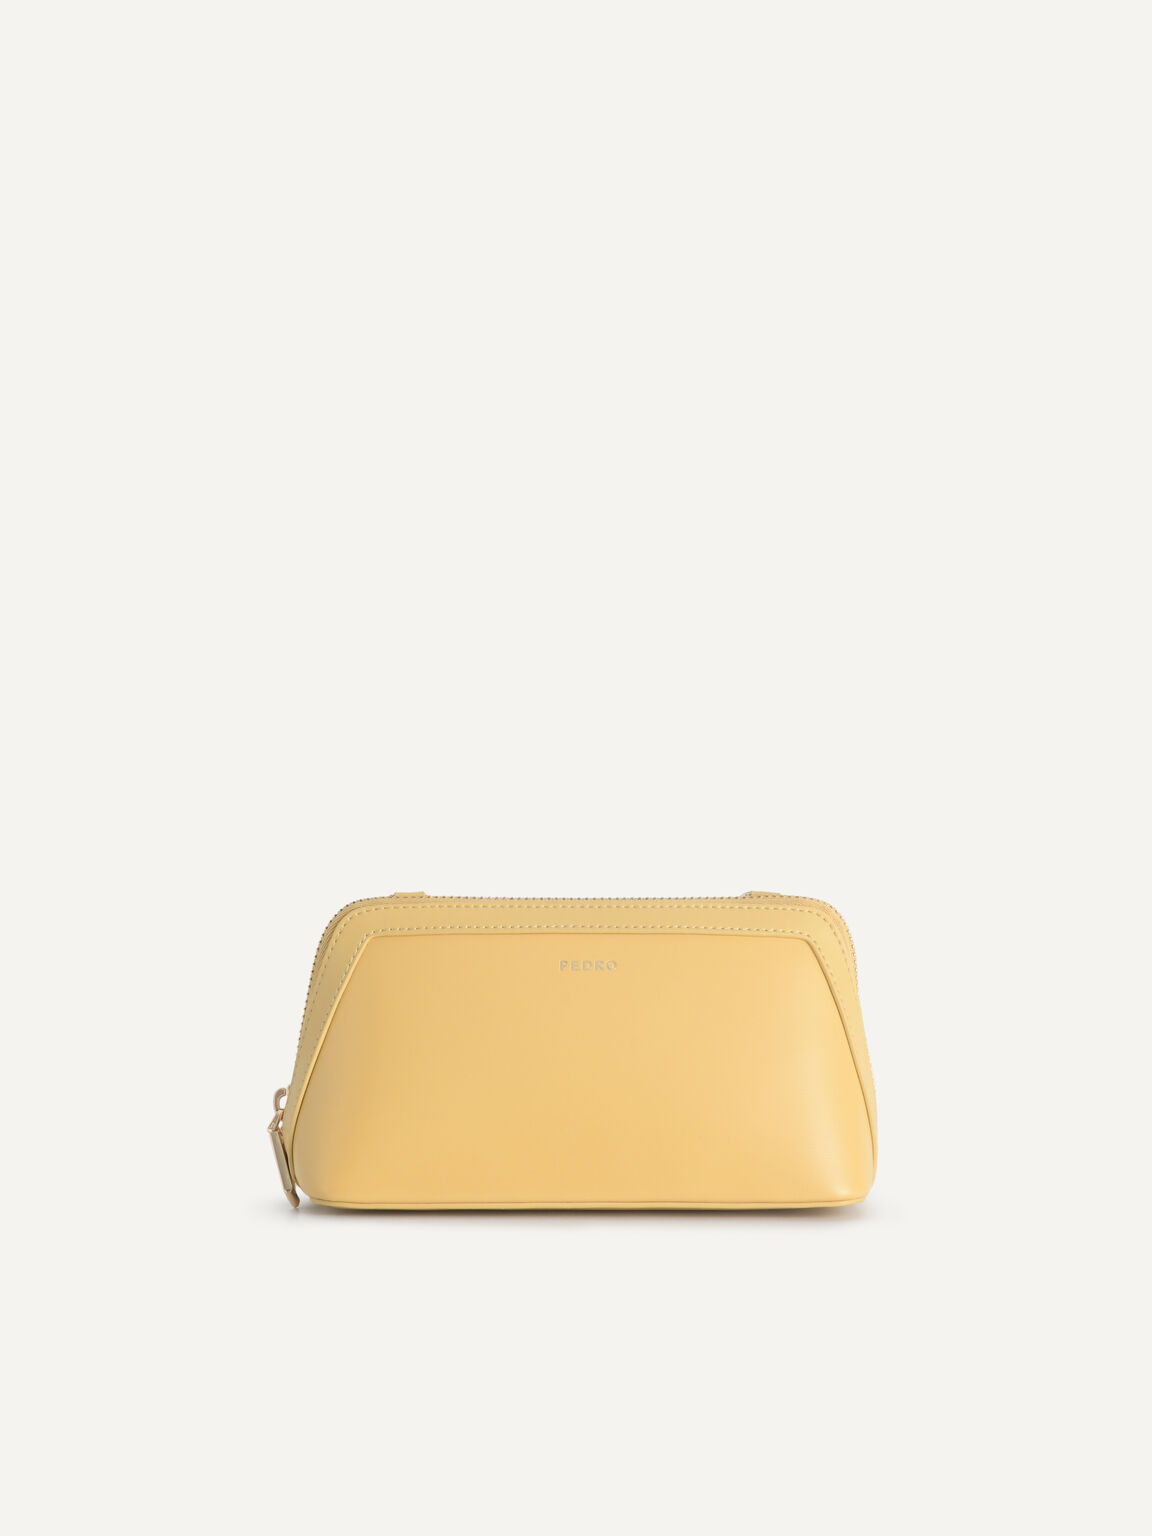 Leather Pouch, Sand, hi-res